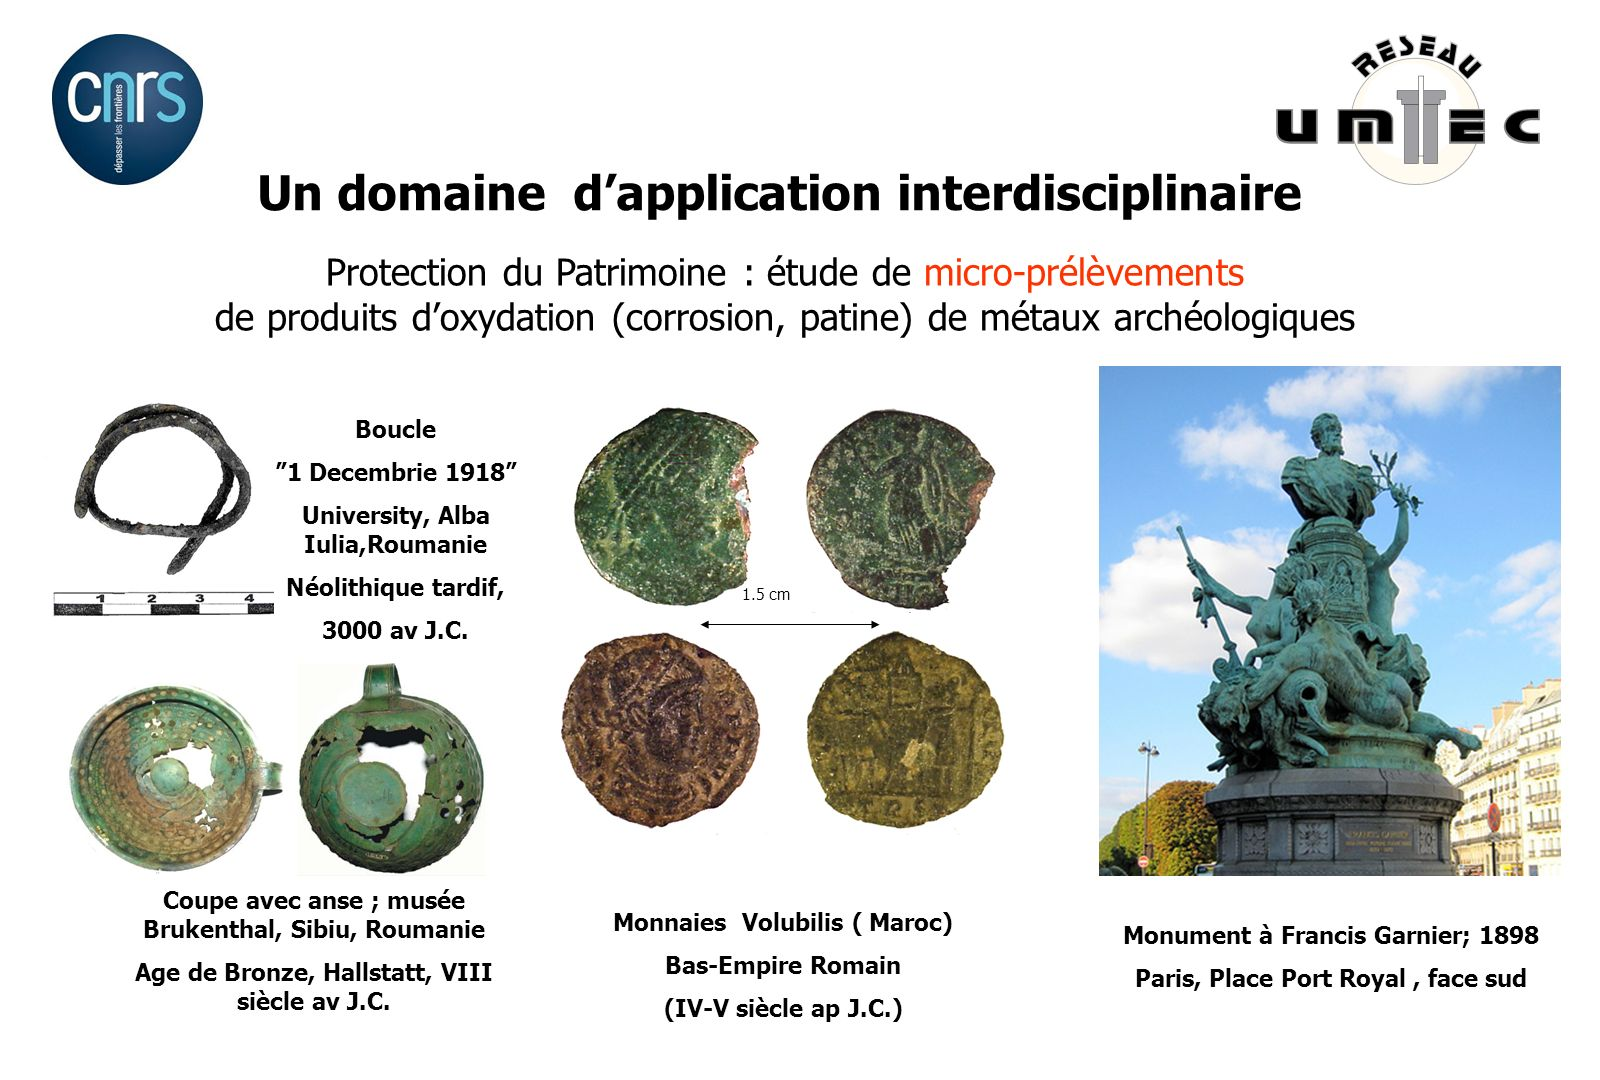 Un domaine d'application interdisciplinaire